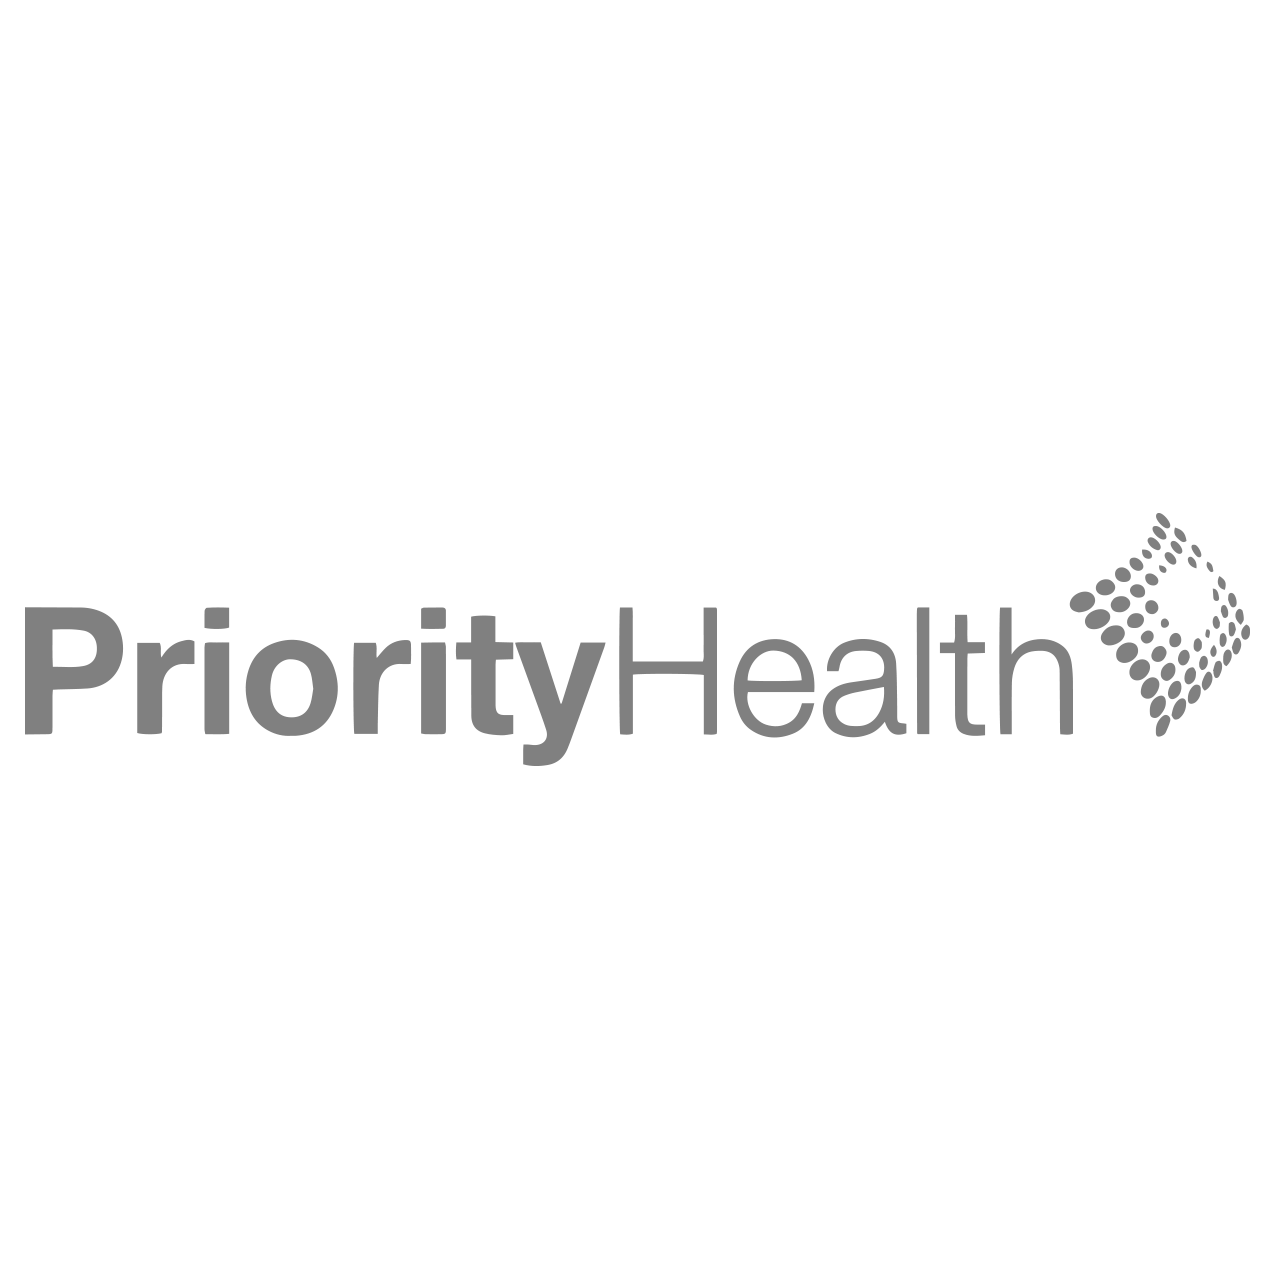 PriorityHealth.png